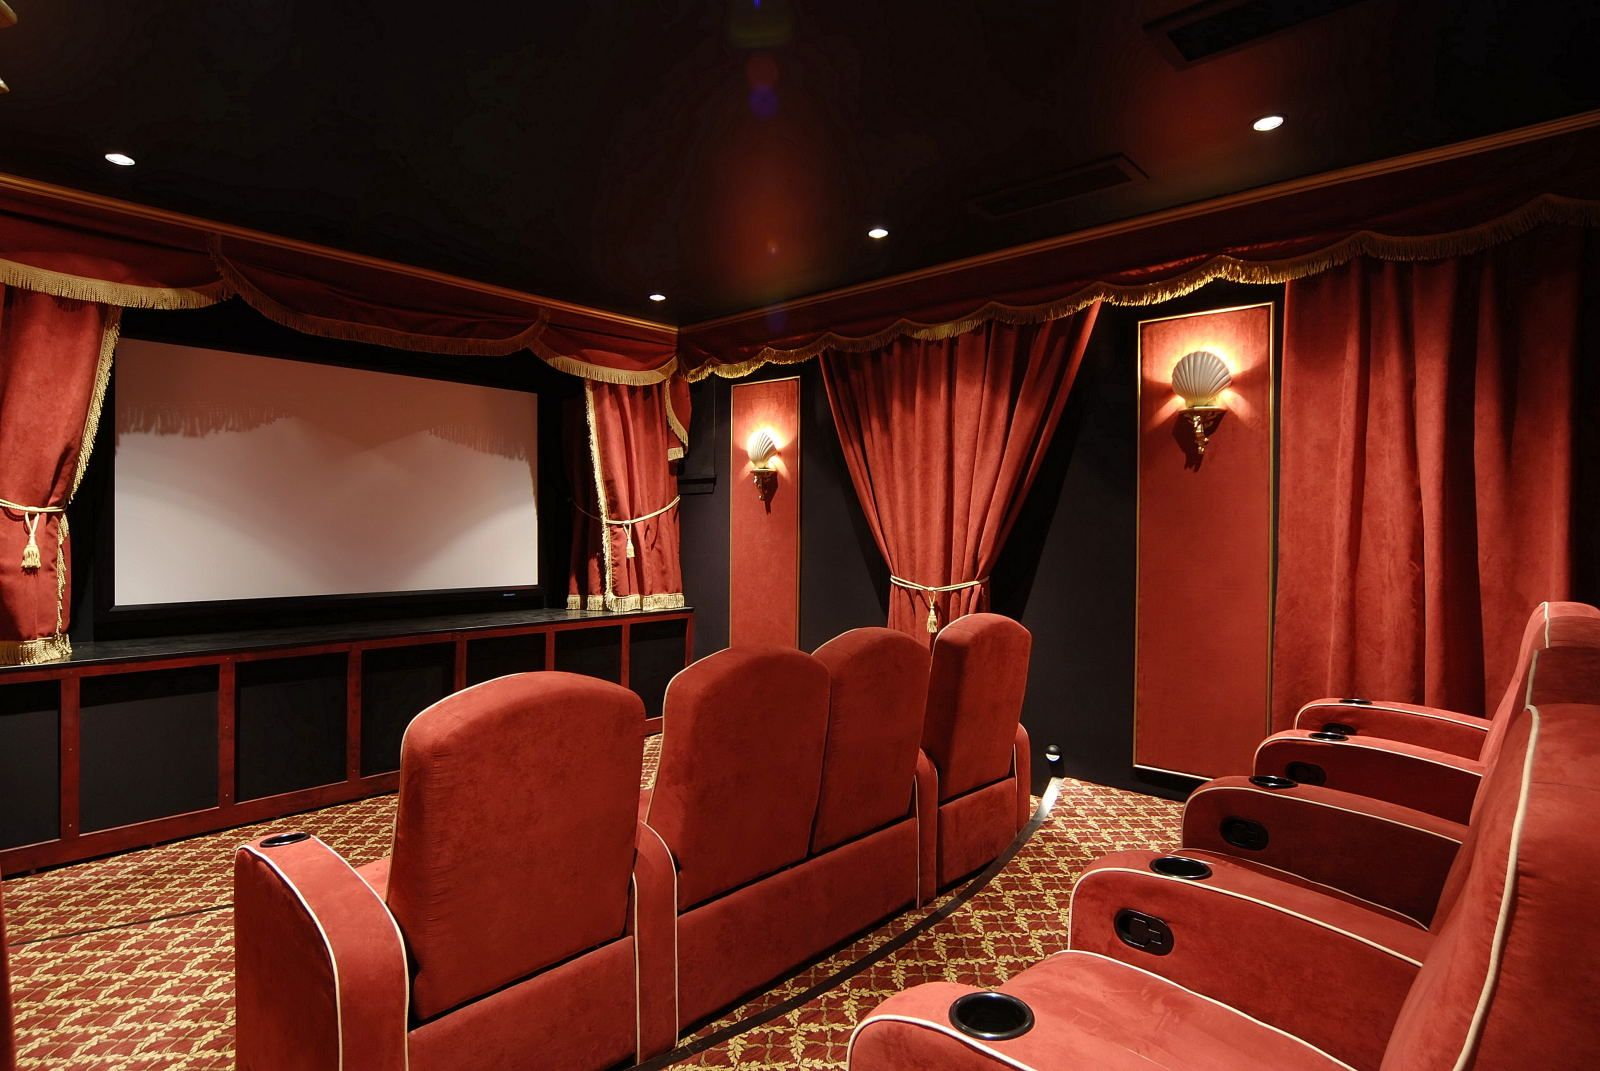 home designs exquisite home theater room plan design ideas with charming red leather sofa and - Home Theater Design Ideas